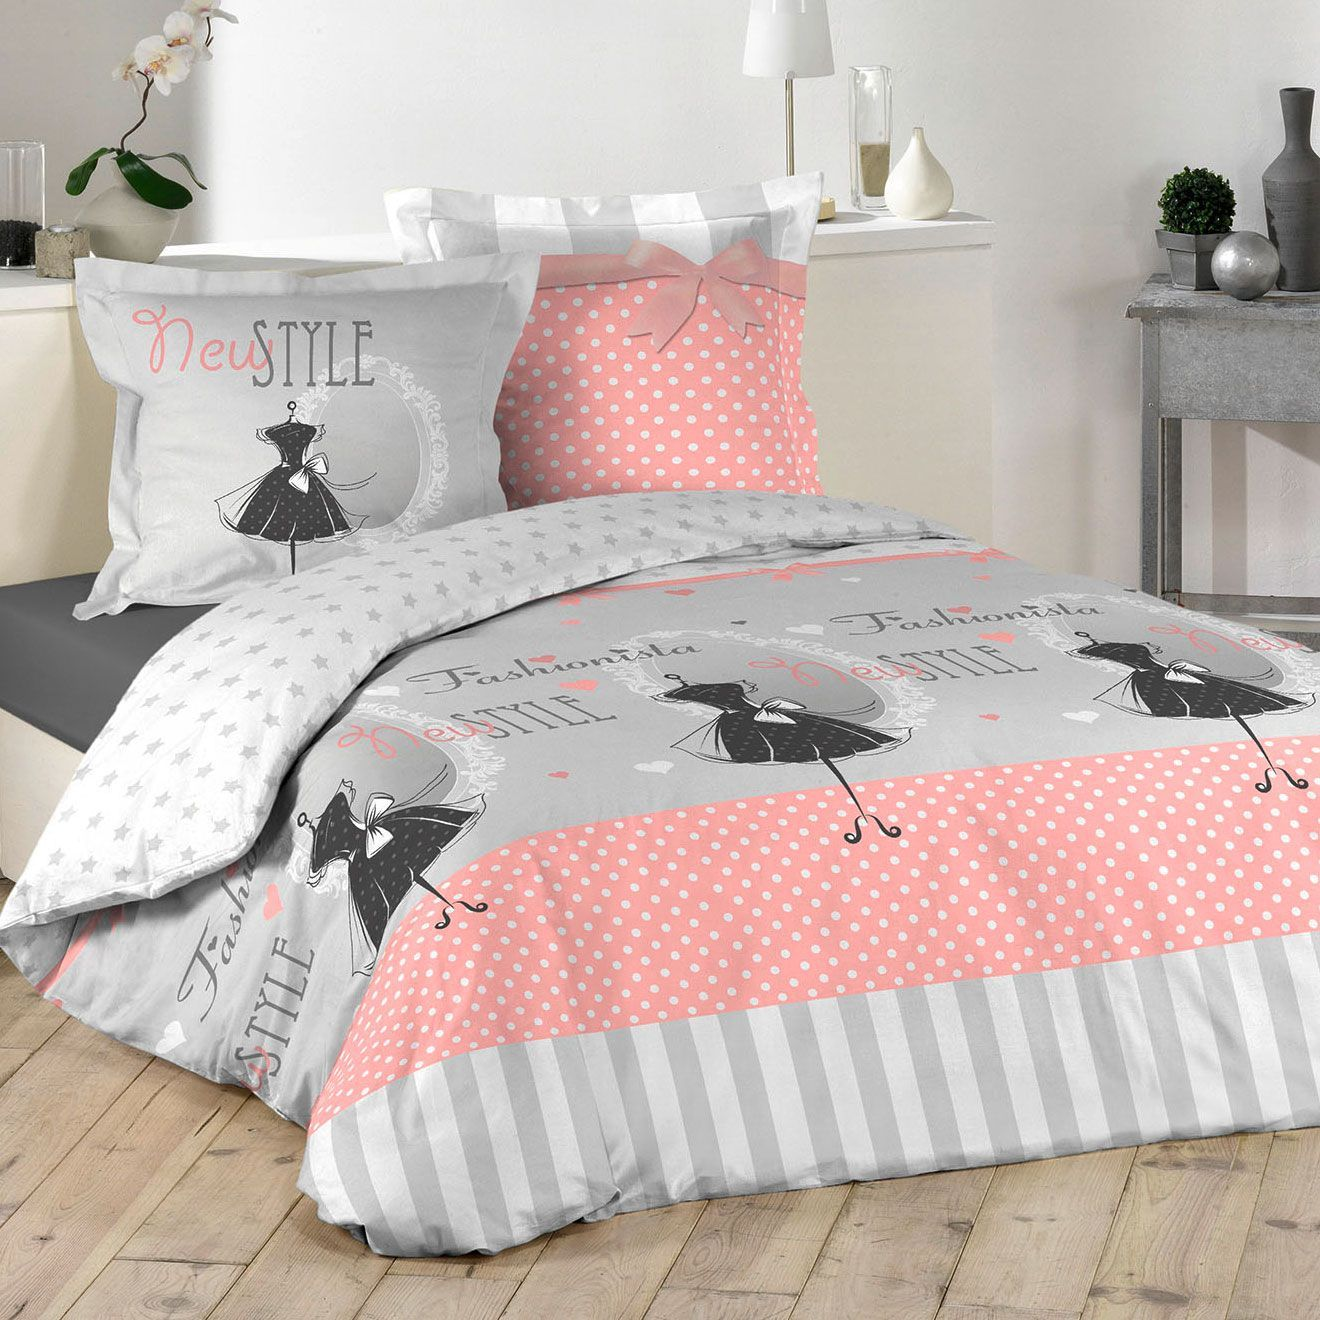 housse de couette et deux taies couture 100 coton 240 cm rose p le housse de couette eminza. Black Bedroom Furniture Sets. Home Design Ideas